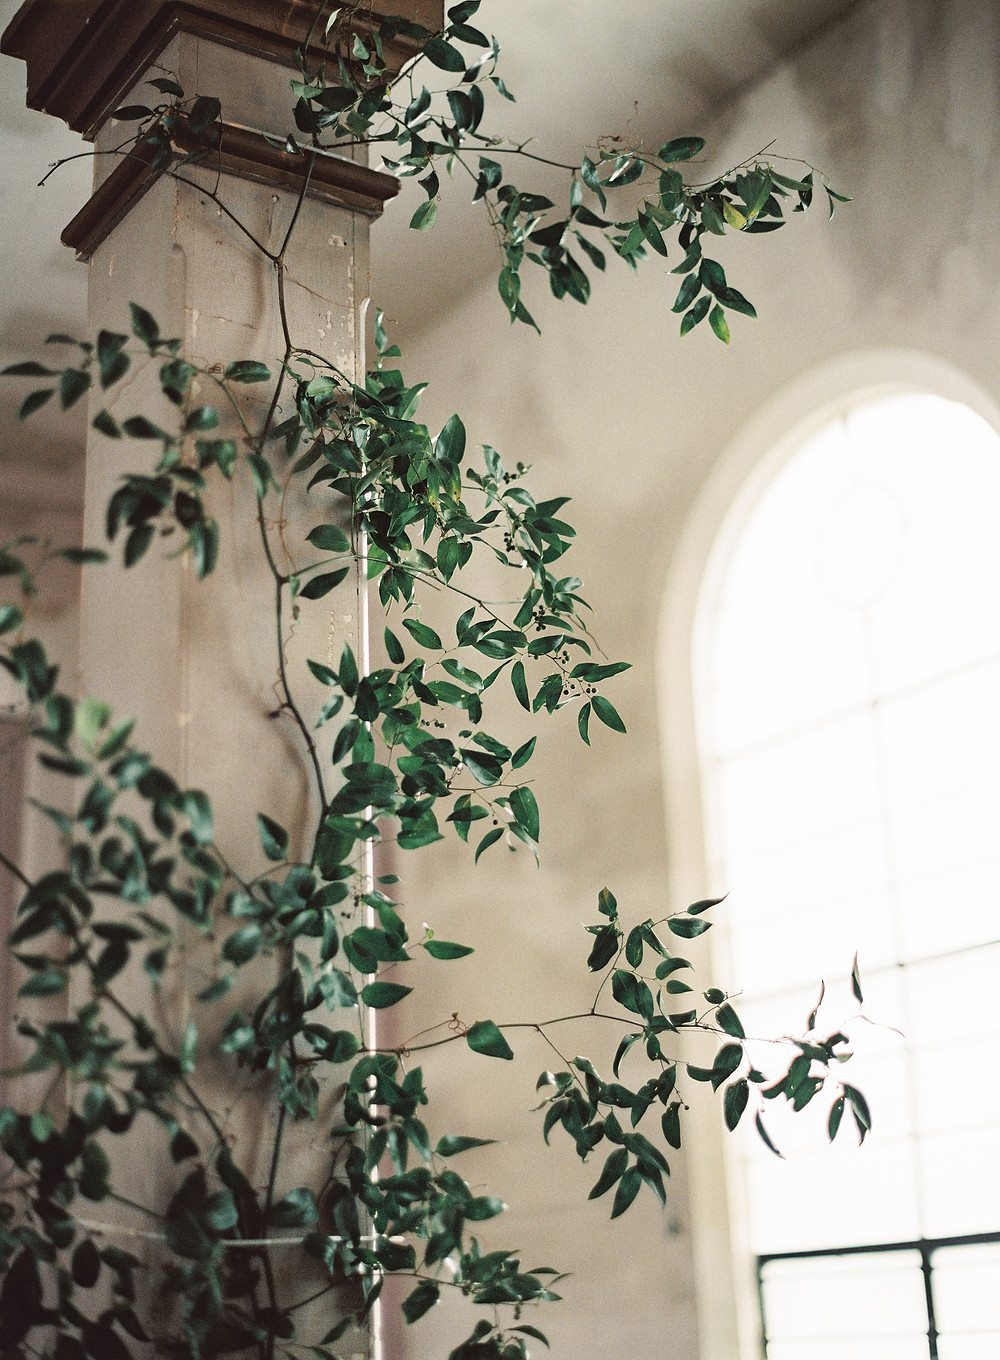 Leaf + petal, New Orleans, wedding, Marigny opera house, smilax columns, greenery wedding, Bridgerton wedding